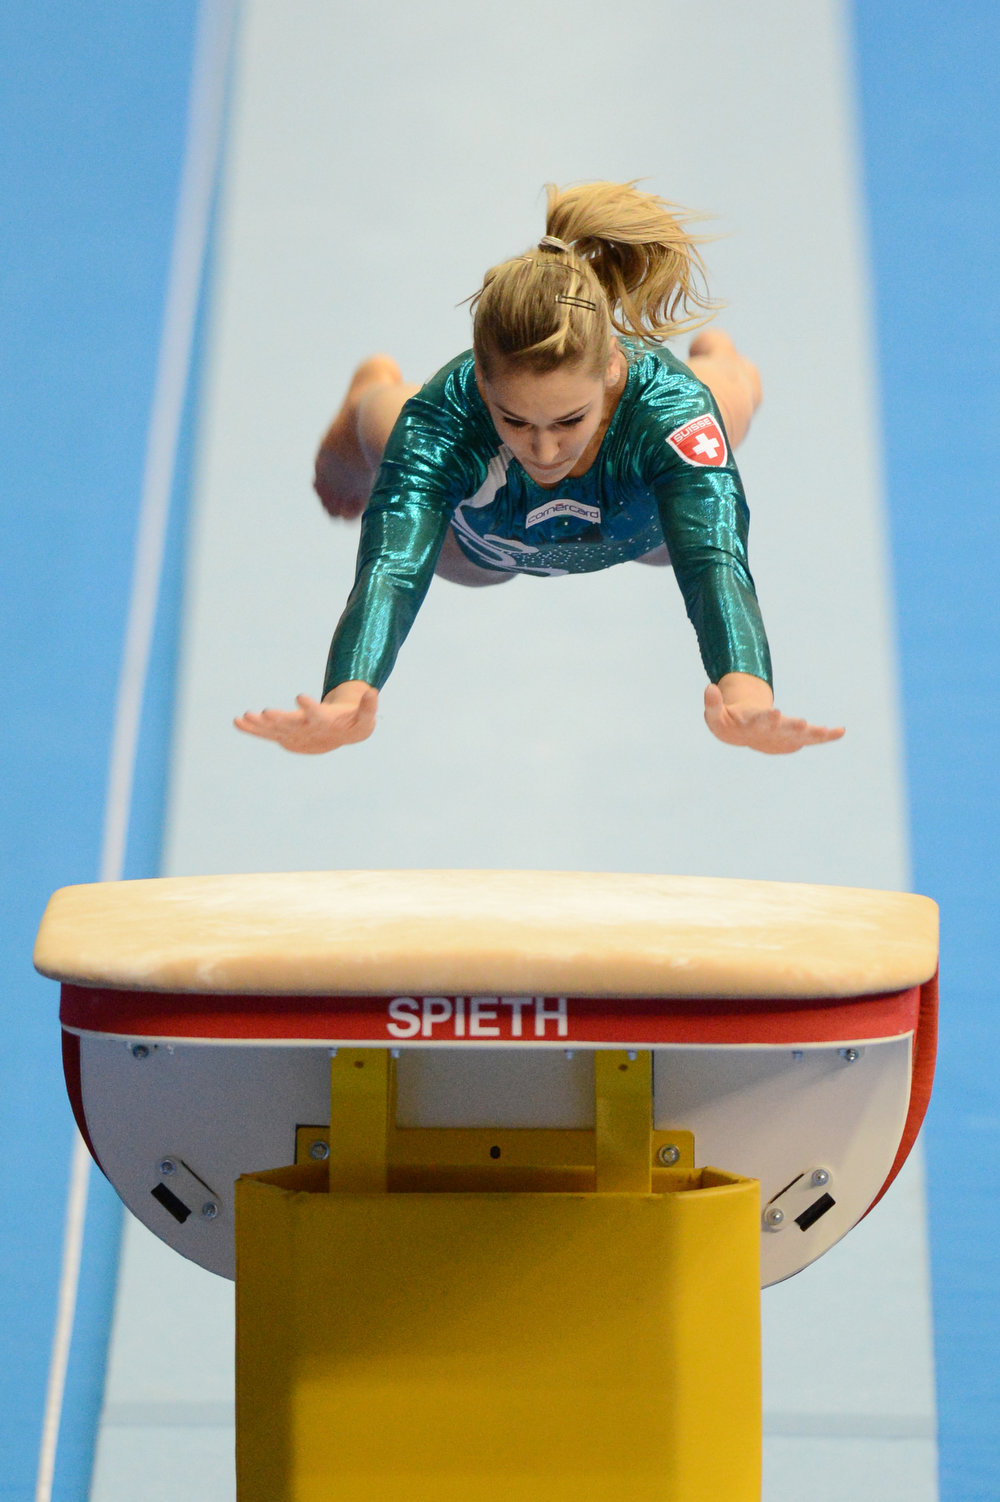 . Switzerland\'s Giulia Steingruber competes on the vault in the women\'s apparatus artistic gymnastics finals during the 5th European Men\'s and Women\'s Artistic Gymnastic Individual Championships in Moscow on April 20, 2013. Switzerland\'s Giulia Steingruber took the first place and Netherlands Noel van Klaveren shared the second place with Romania\'s Larisa Andreea Iordache.  NATALIA KOLESNIKOVA/AFP/Getty Images